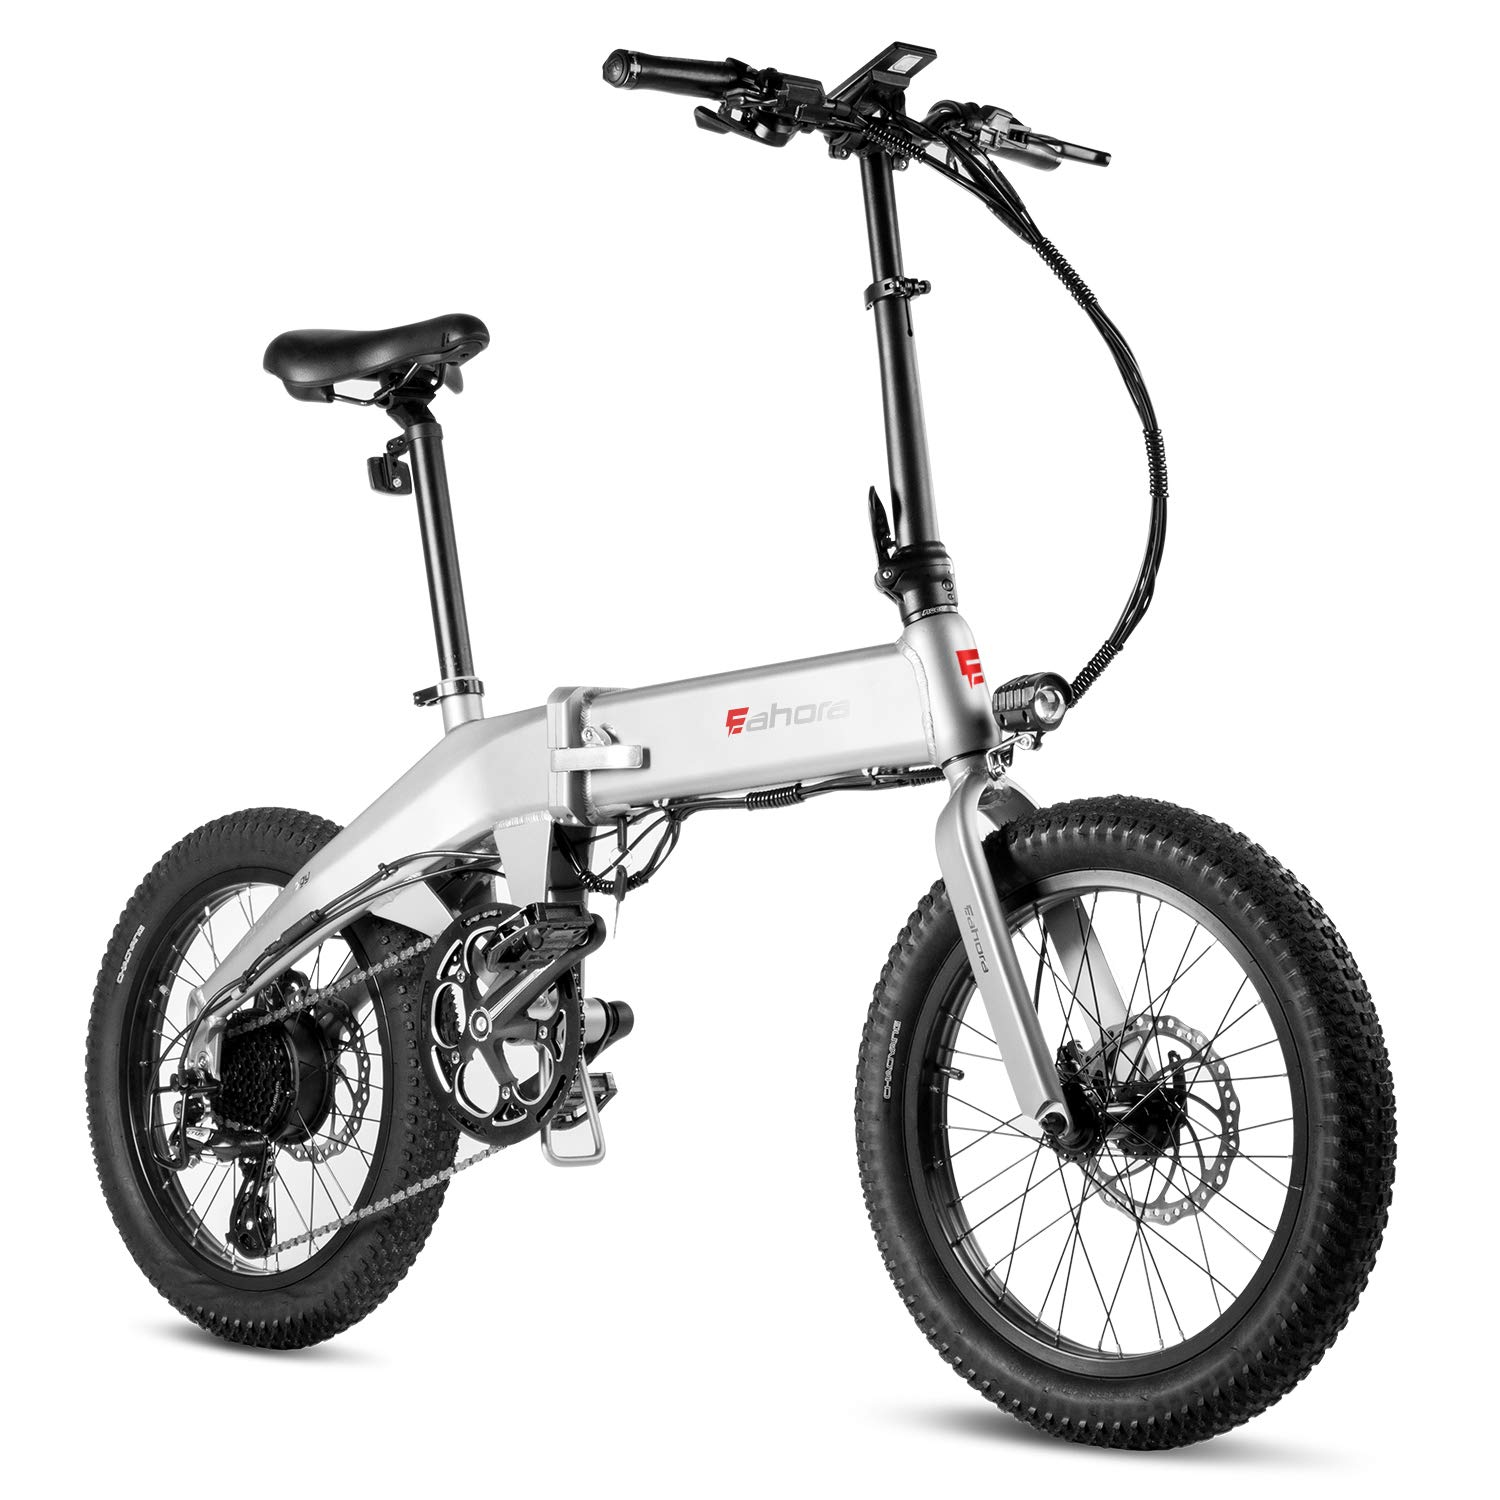 Eahora X6 20-inch Folding Electric Bike E-PAS Recharge System 8 Speed, 48V 13Ah Lithium Battery 350W Motor Electric Bicycle for Adults